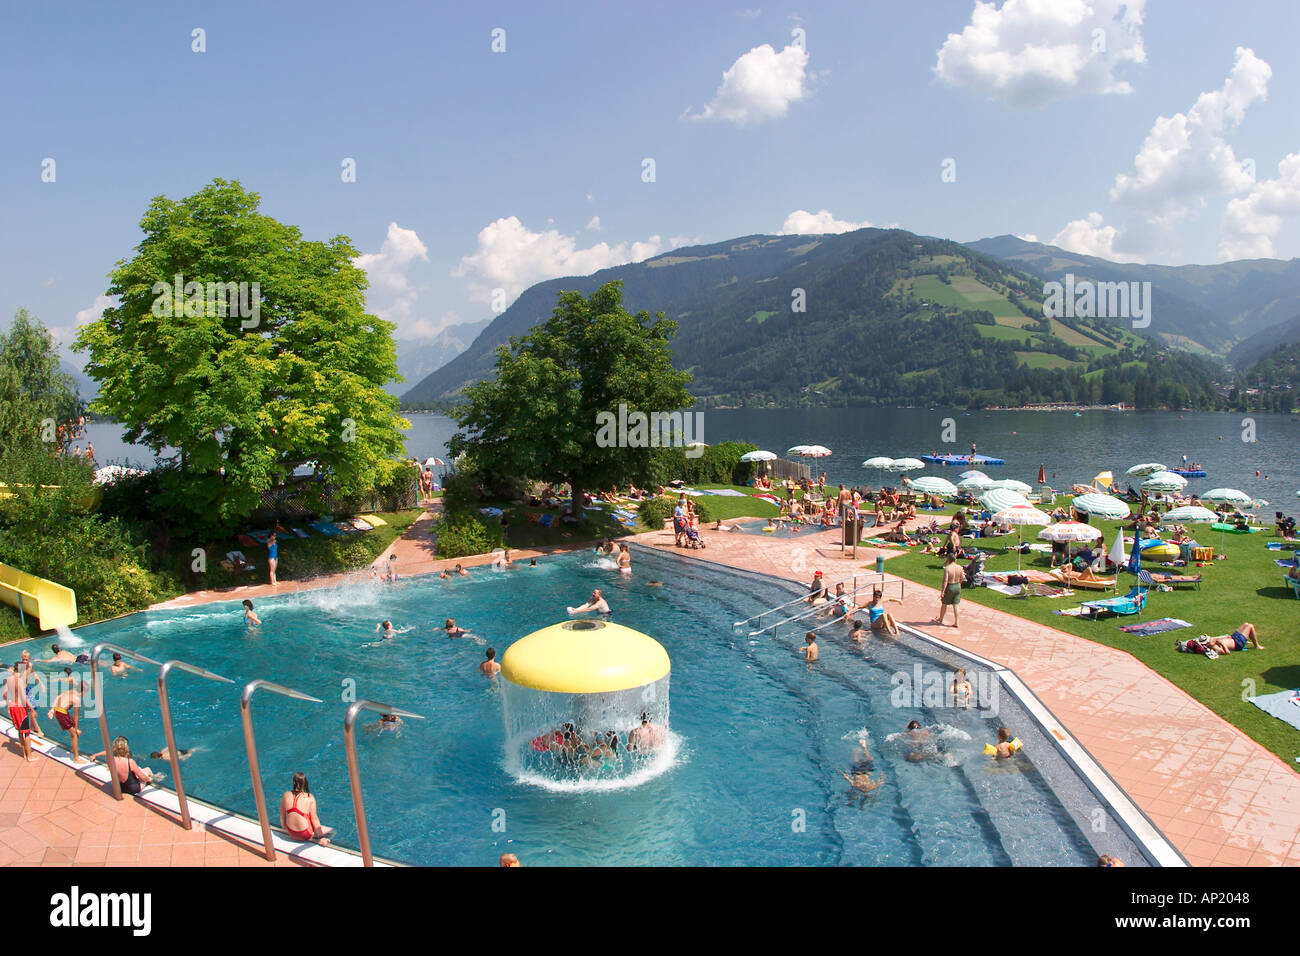 Freibad In Zell Am See Zeller See Bin Siehe Salzburg - Zwembad Zell Am See